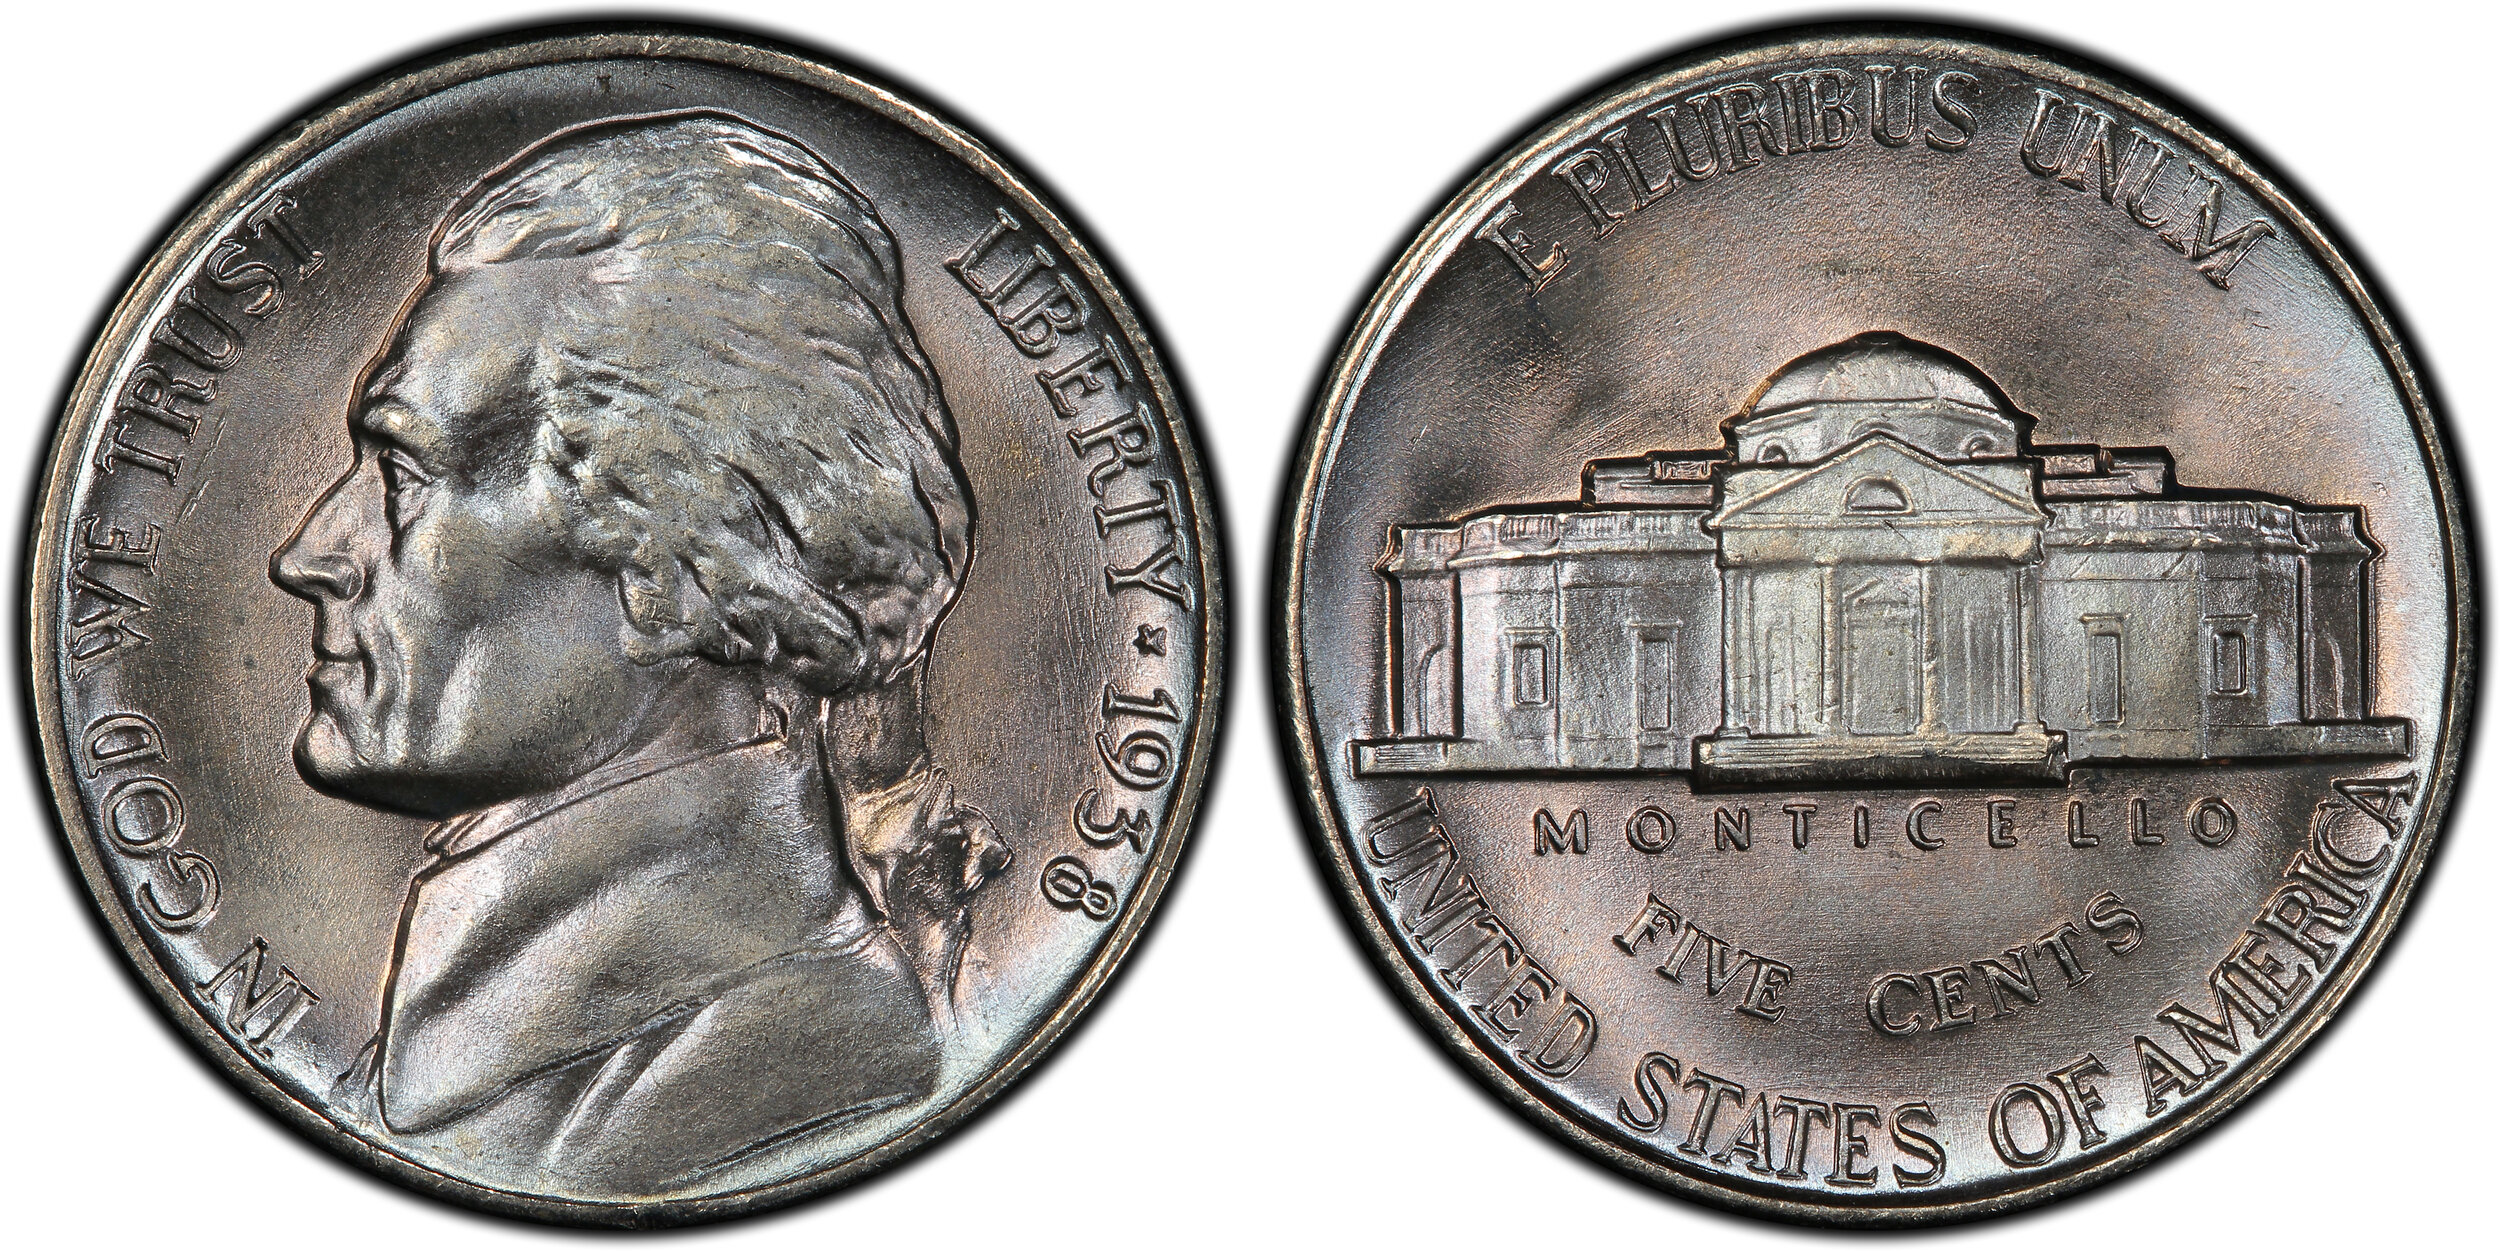 Jefferson Nickel.jpg